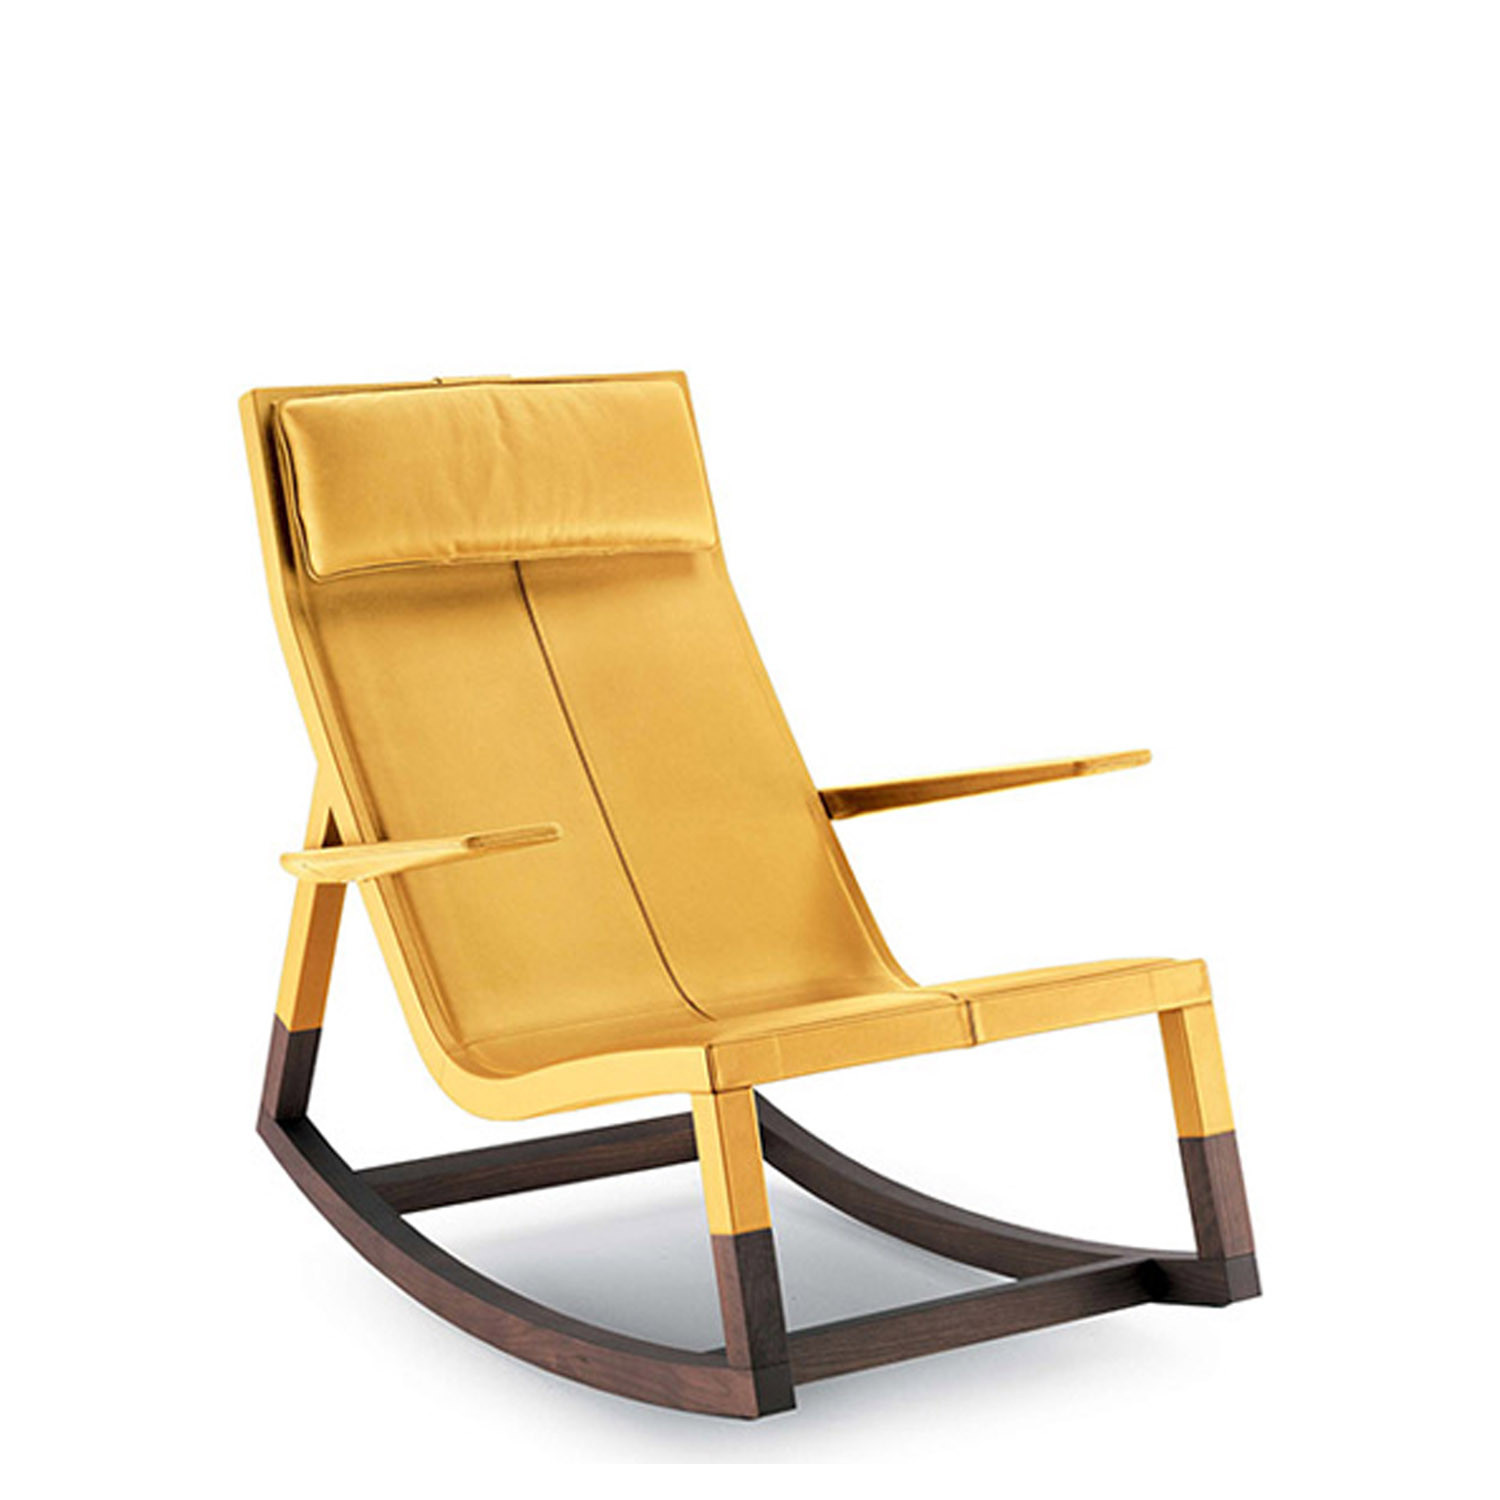 modern rocking chair singapore floor chairs with back support don 39do apres furniture